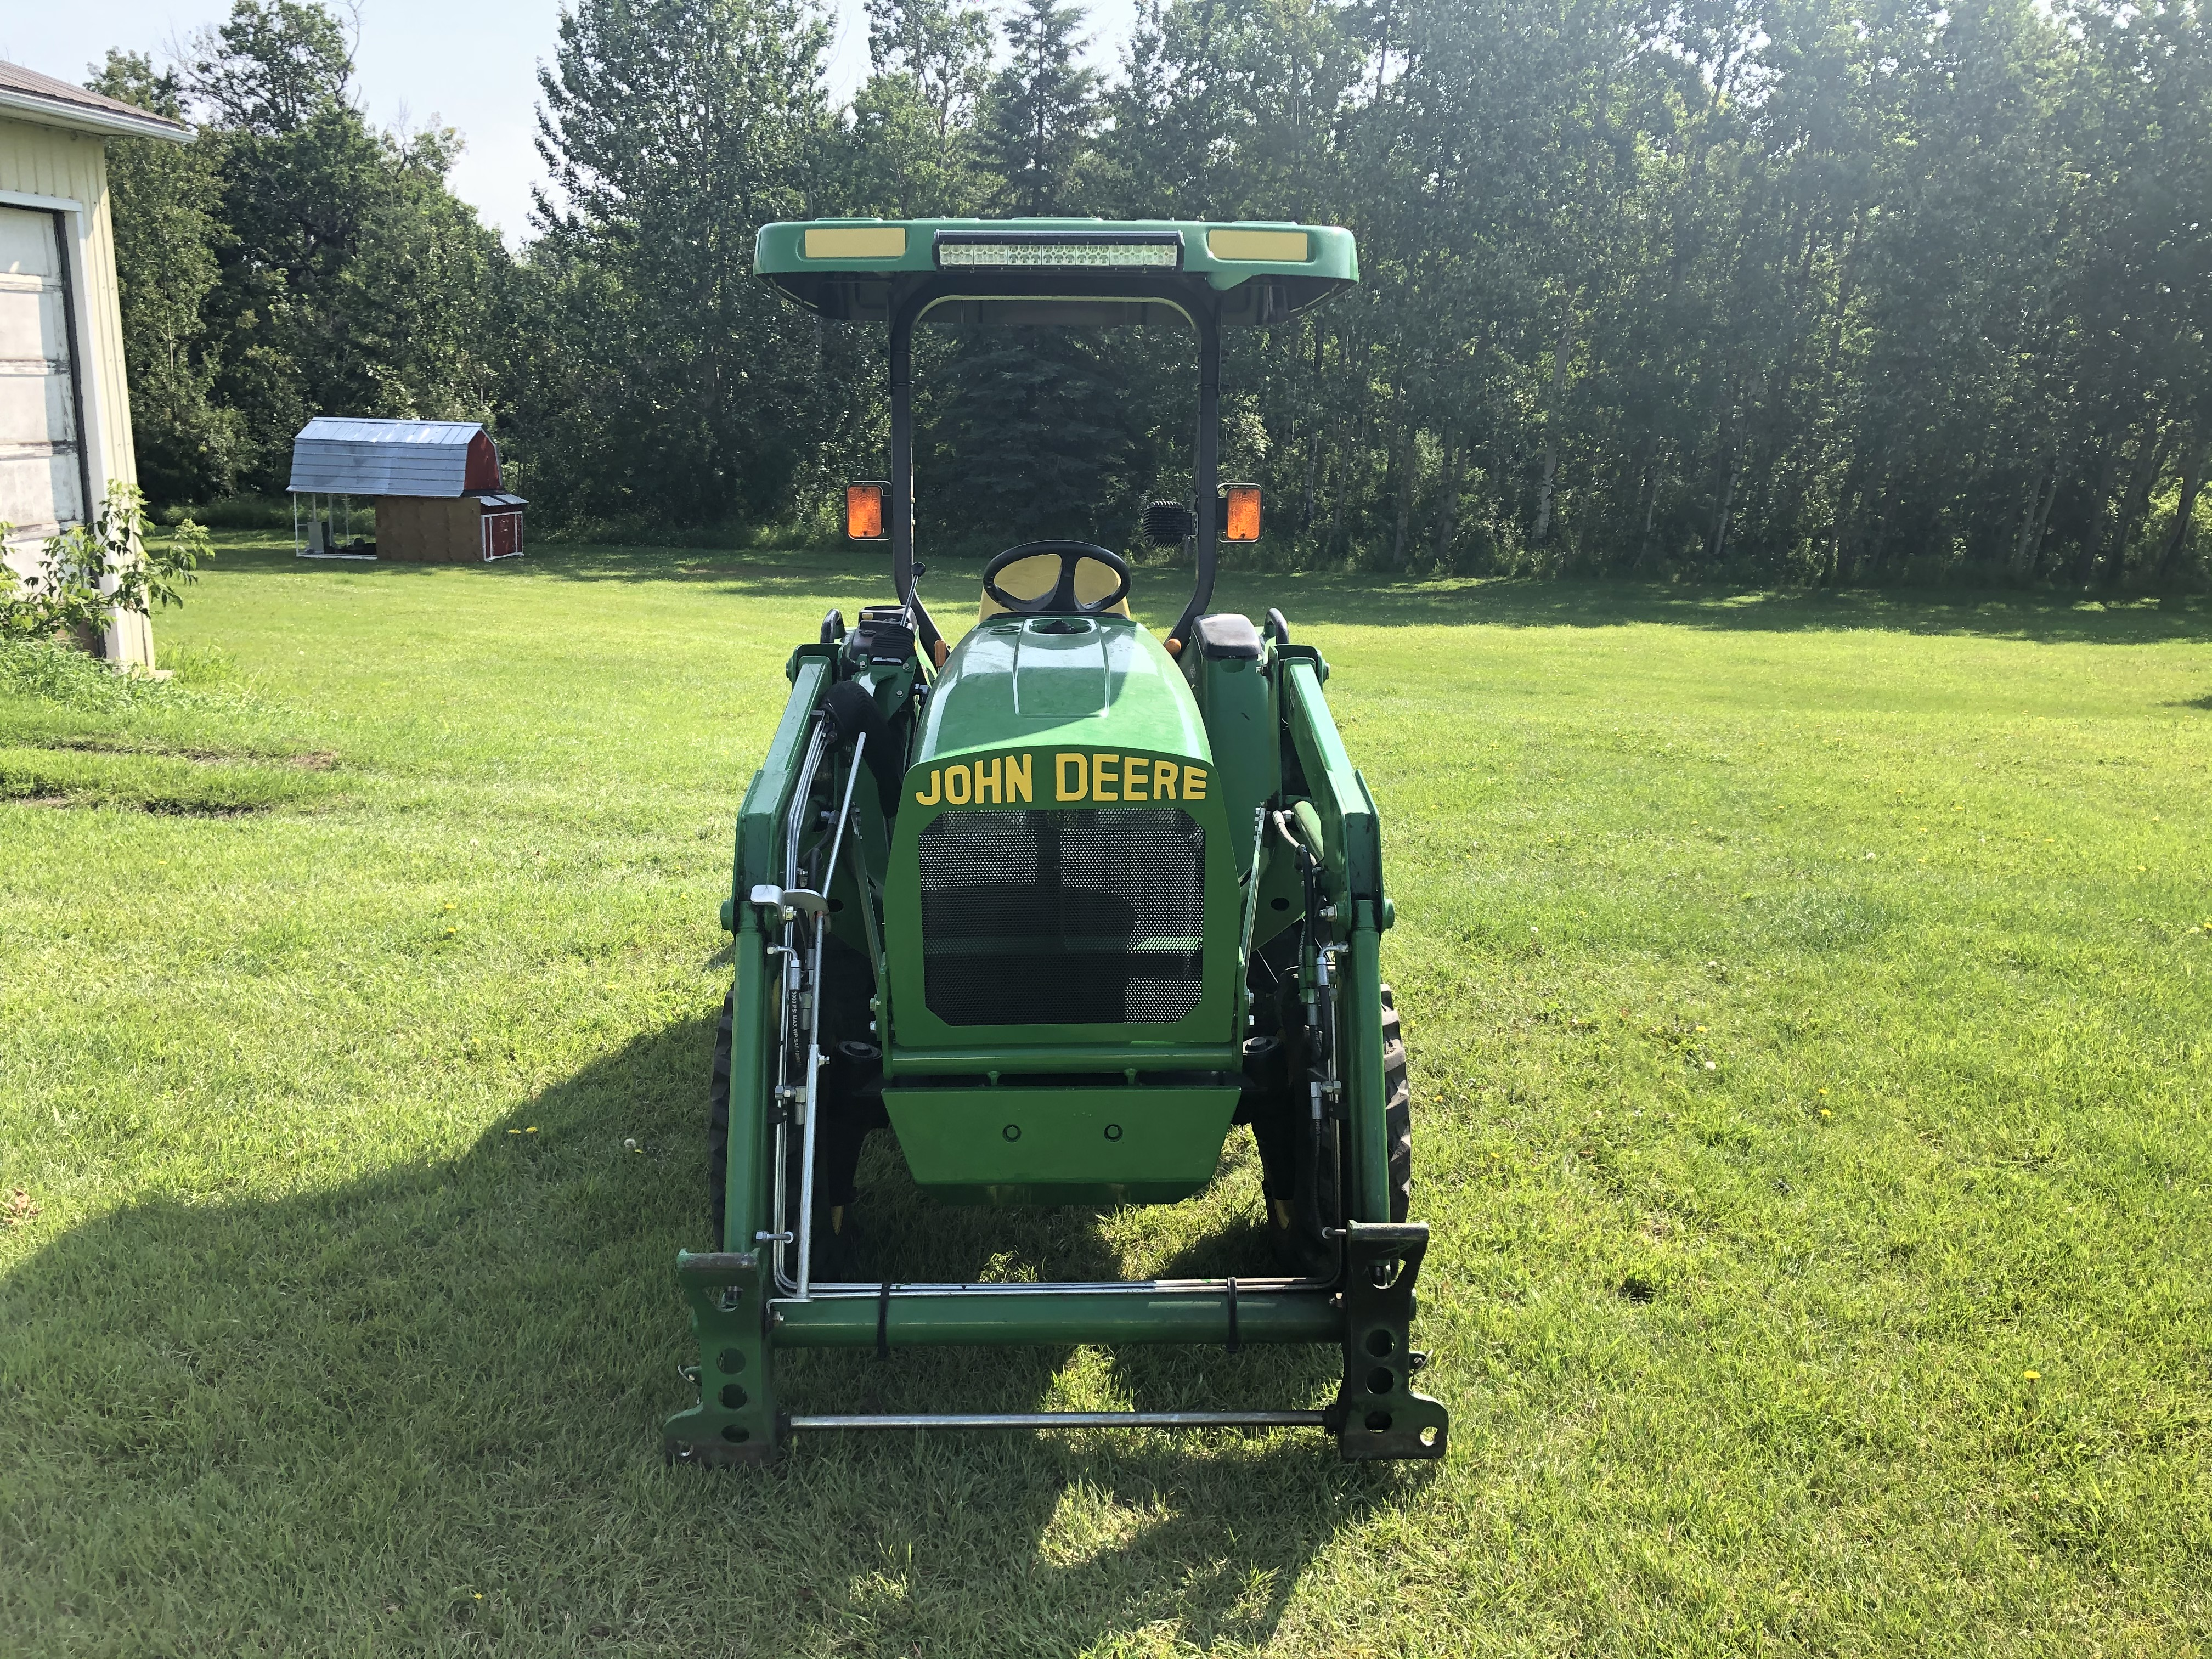 Click image for larger version.  Name:deere front.JPG Views:20 Size:6.83 MB ID:701240